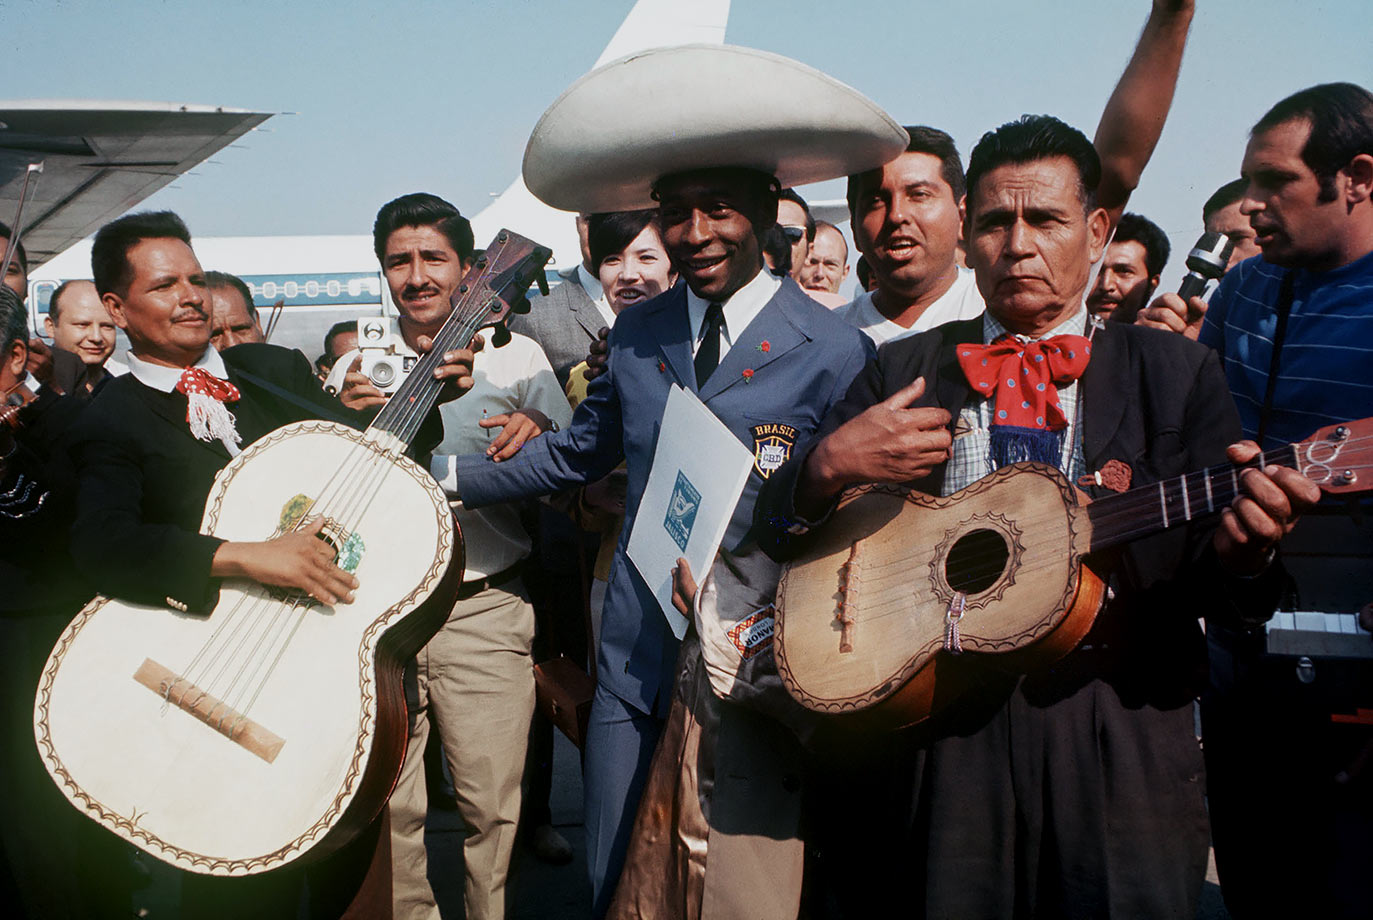 Pelé is greeted by a mariachi band upon his arrival in Mexico for the 1970 World Cup. He'd continue to impress the country over the course of the next month, racking up three goals in Brazil's eventual triumph.